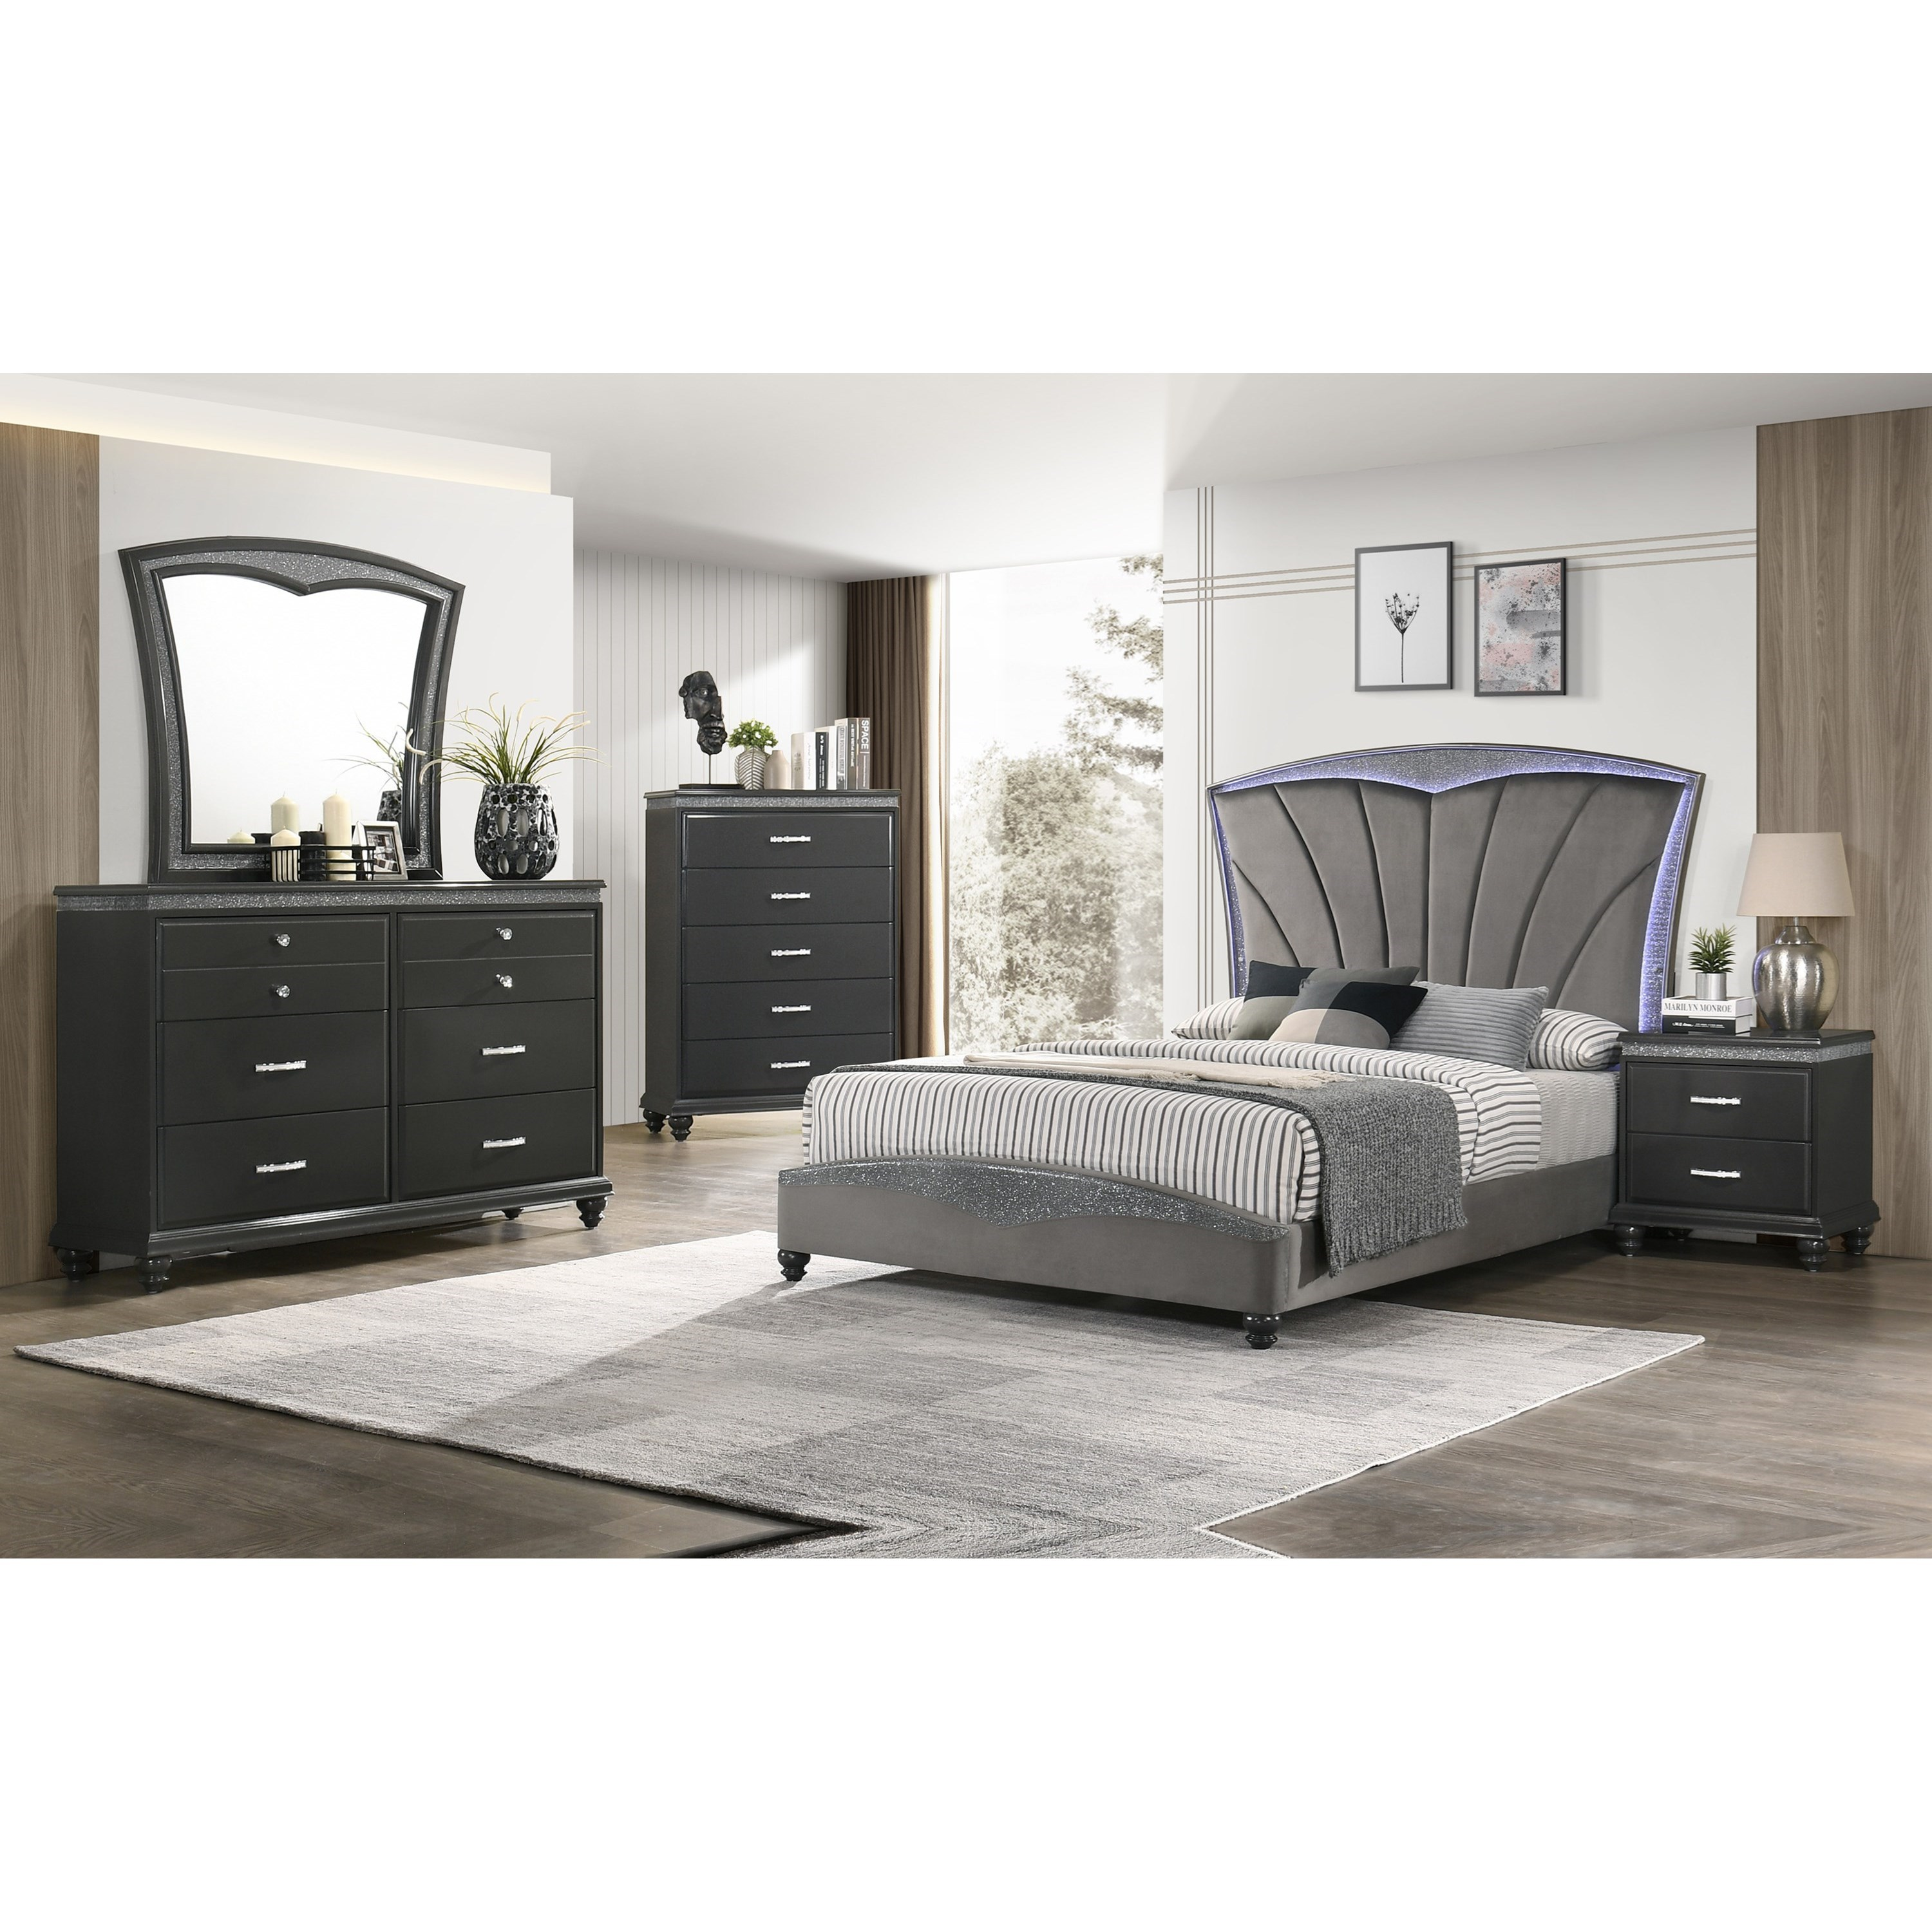 FRAMPTON Queen Bedroom Group by Crown Mark at Northeast Factory Direct